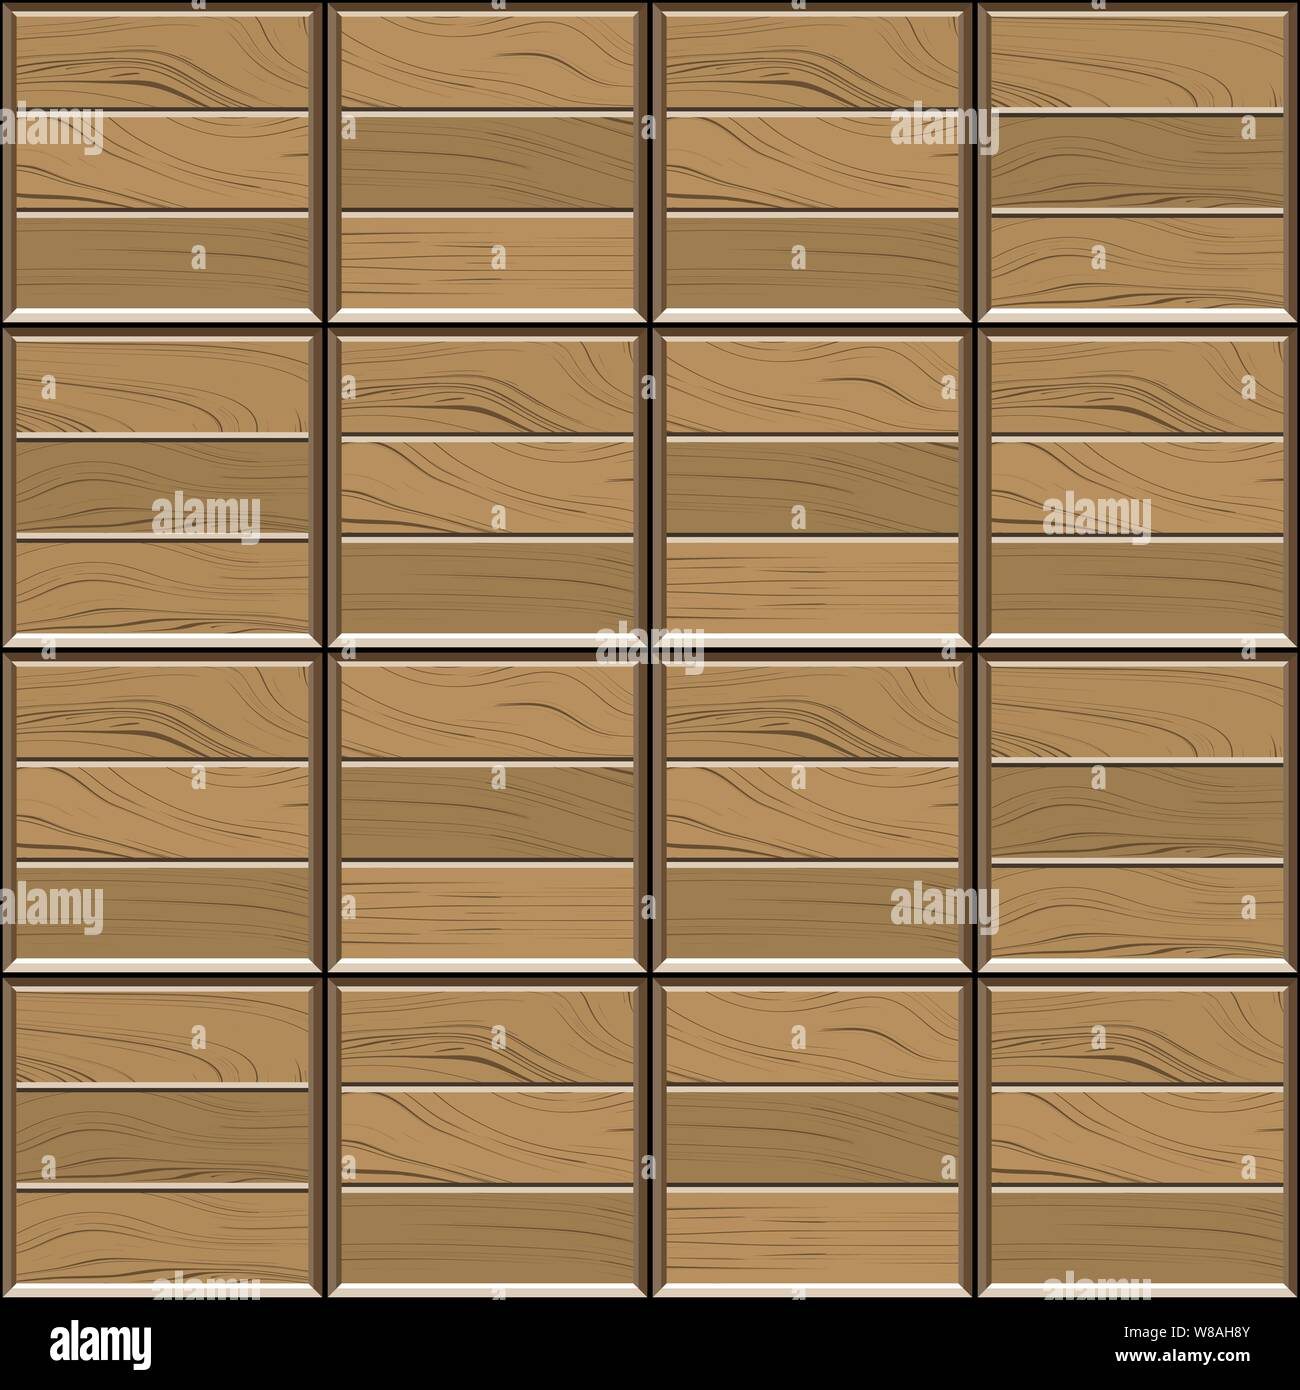 Abstract seamless pattern of brown wood parquet floor tiles.Design